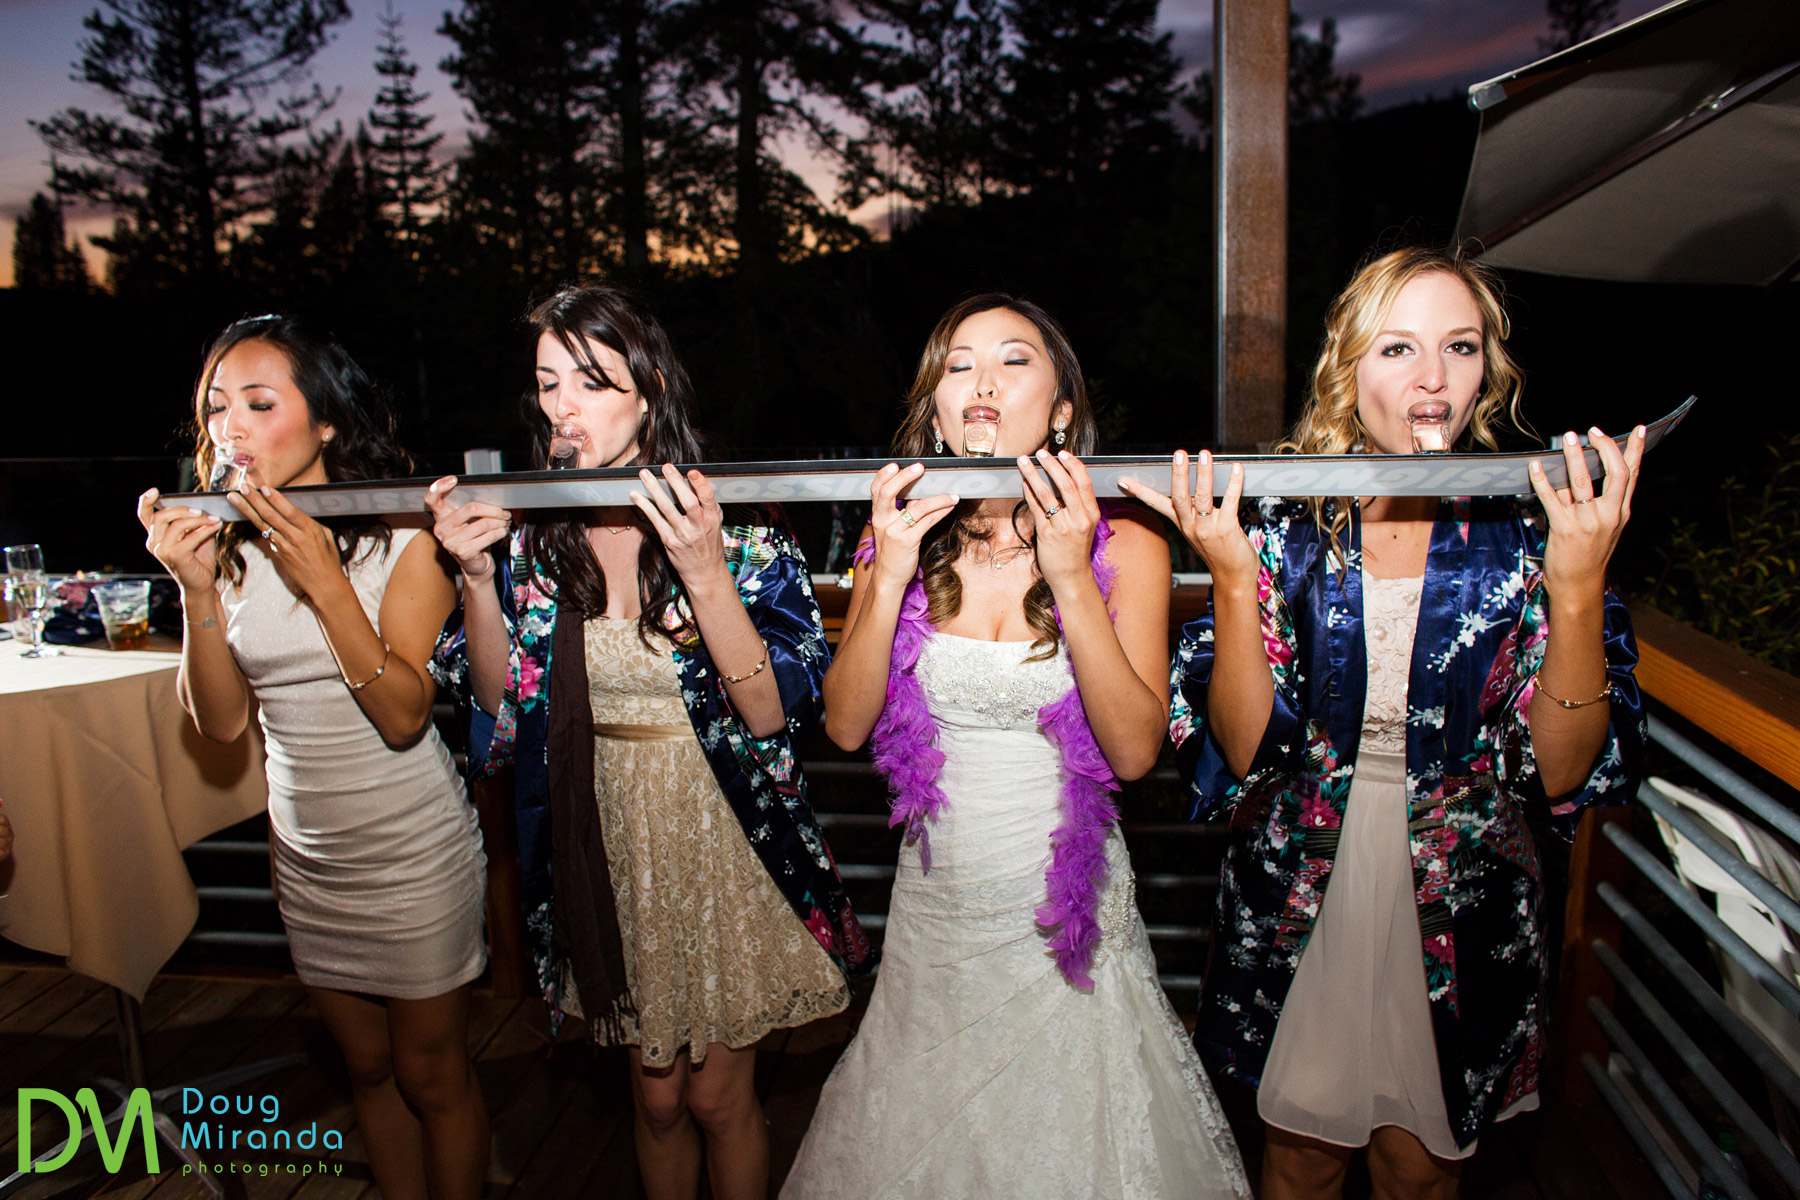 Nick's father made these shot ski's for the wedding and they were used throughout the night.